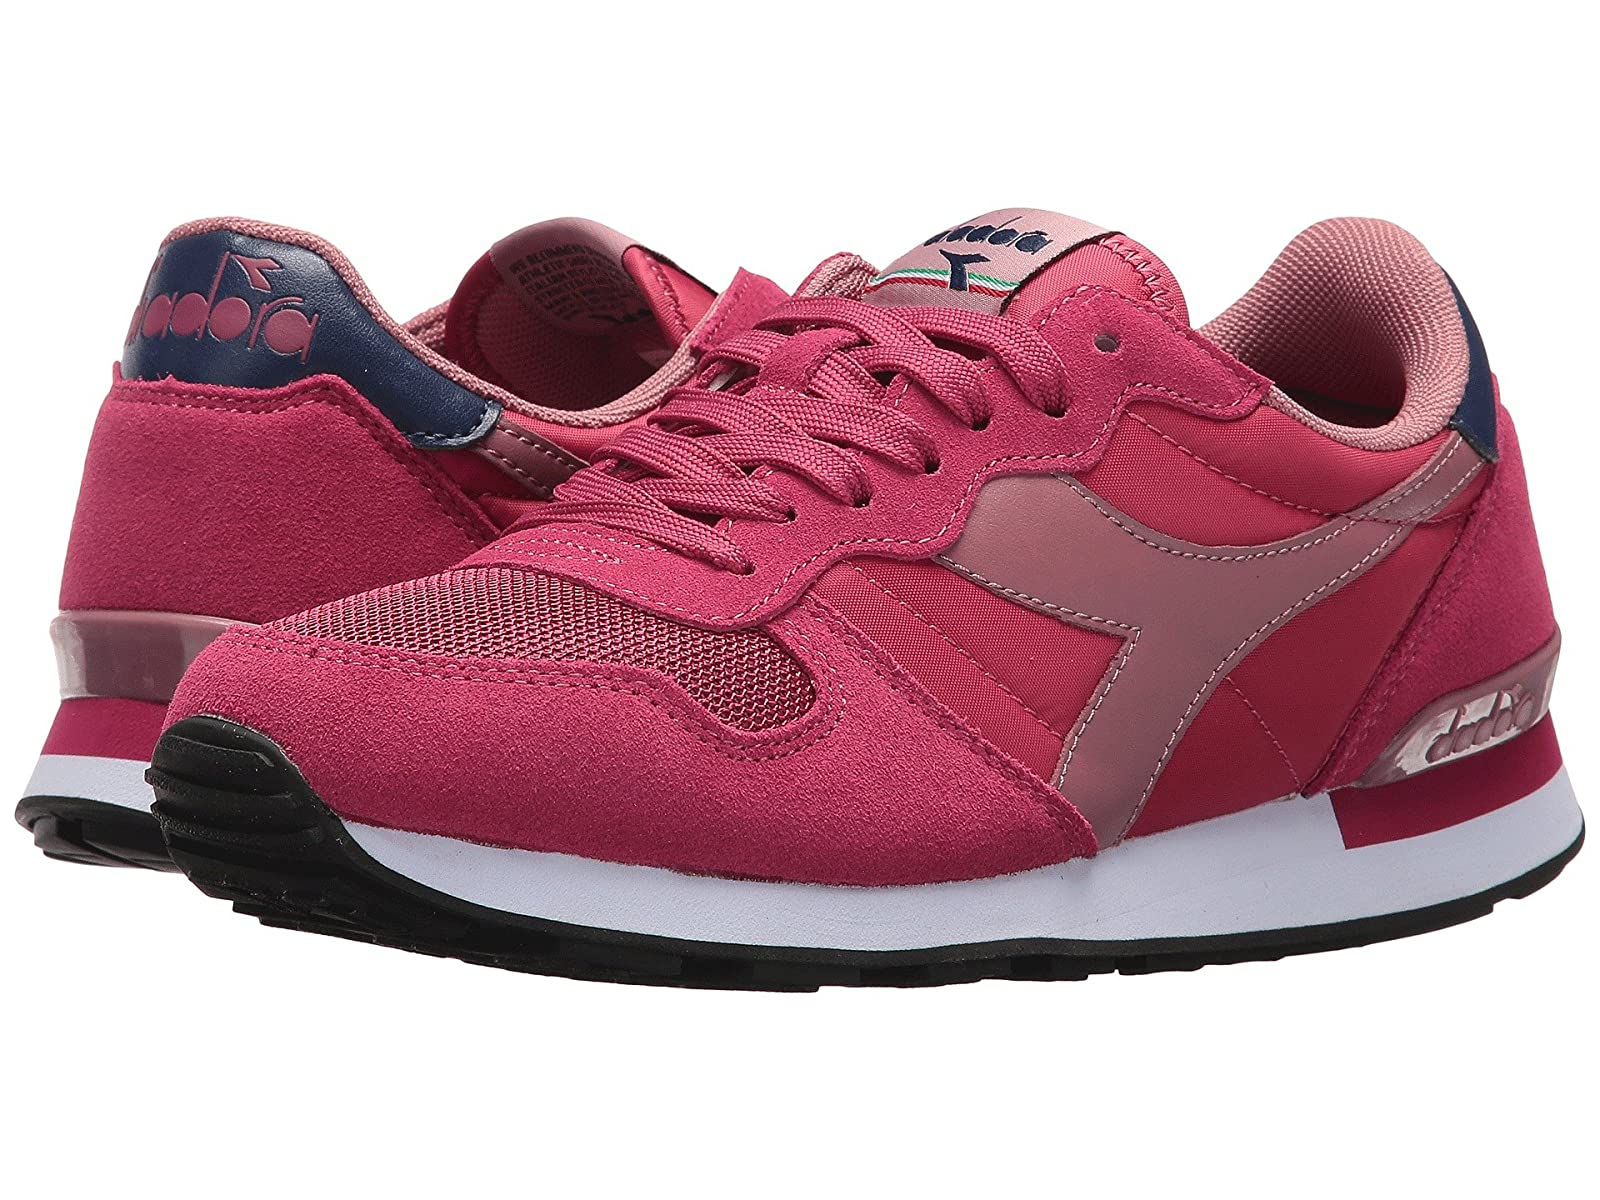 Diadora CamaroCheap and distinctive eye-catching shoes